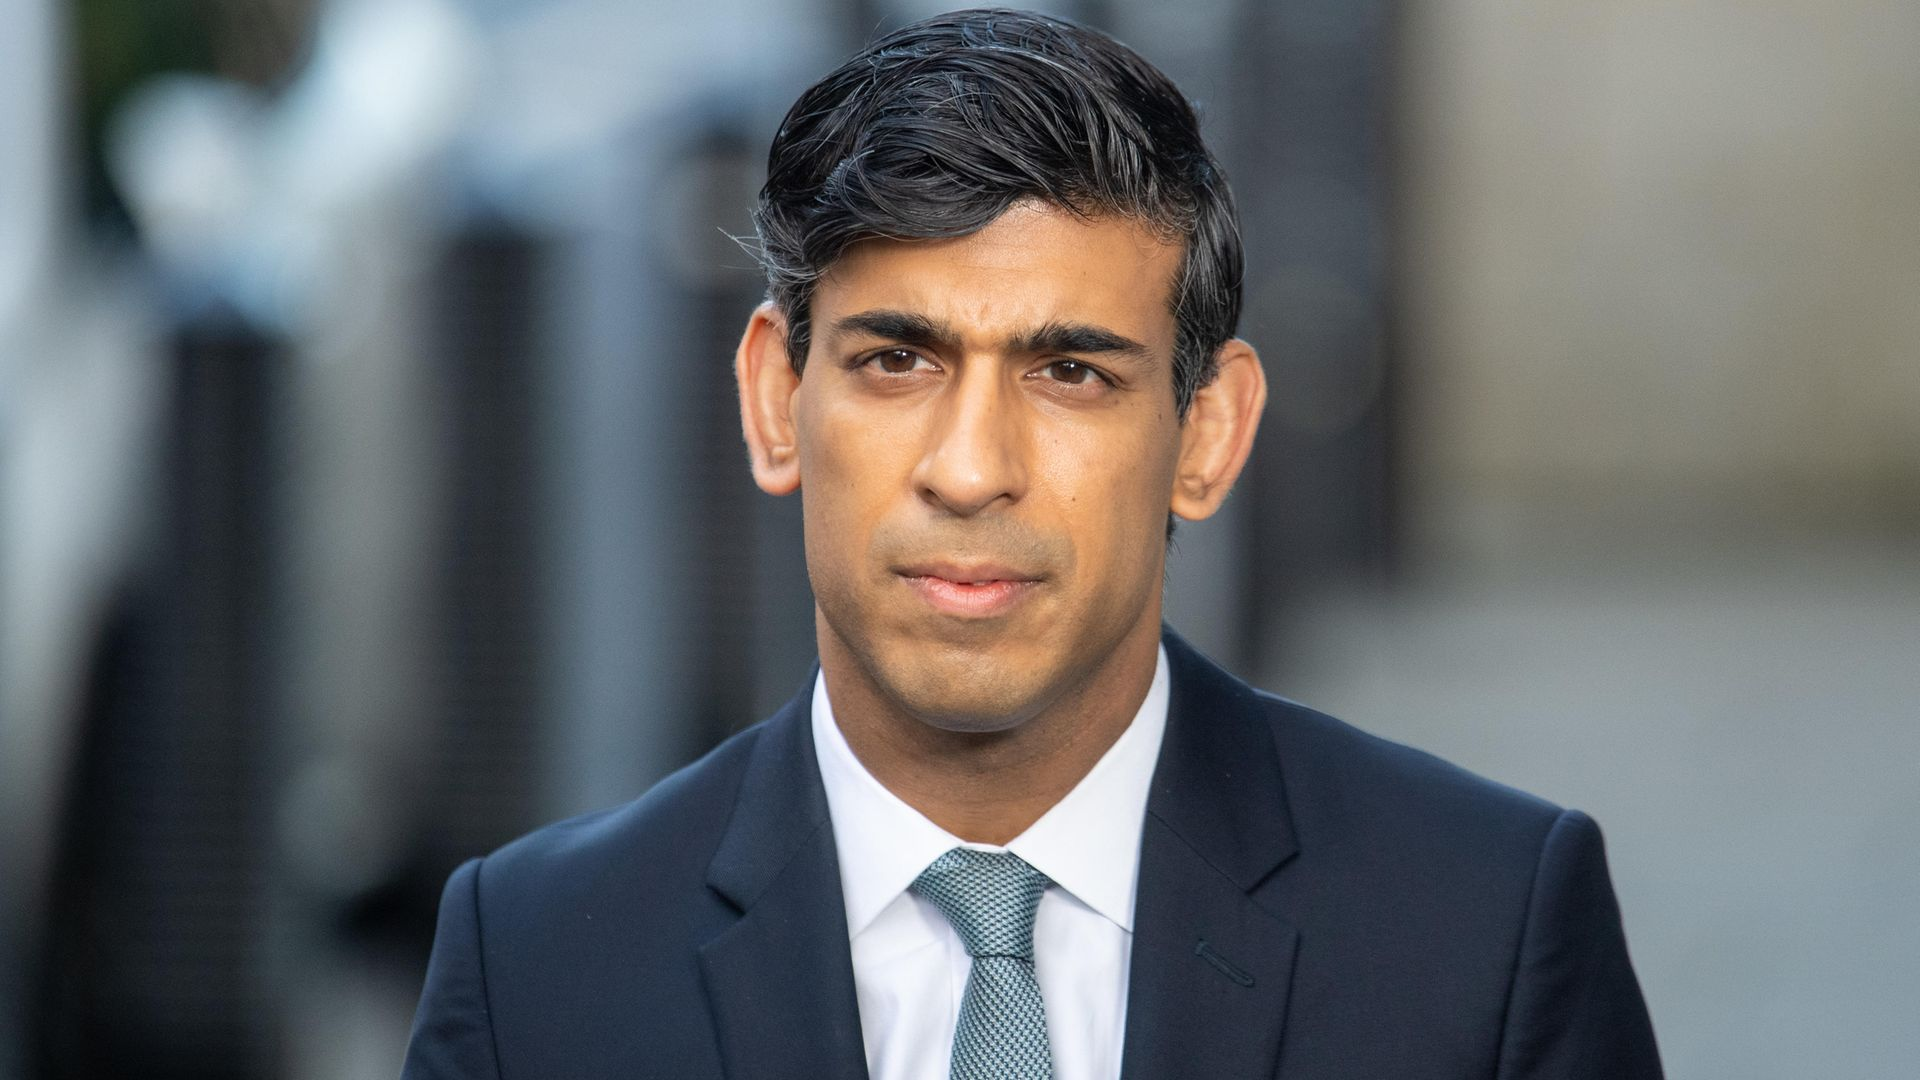 Chancellor of the exchequer Rishi Sunak - Credit: PA